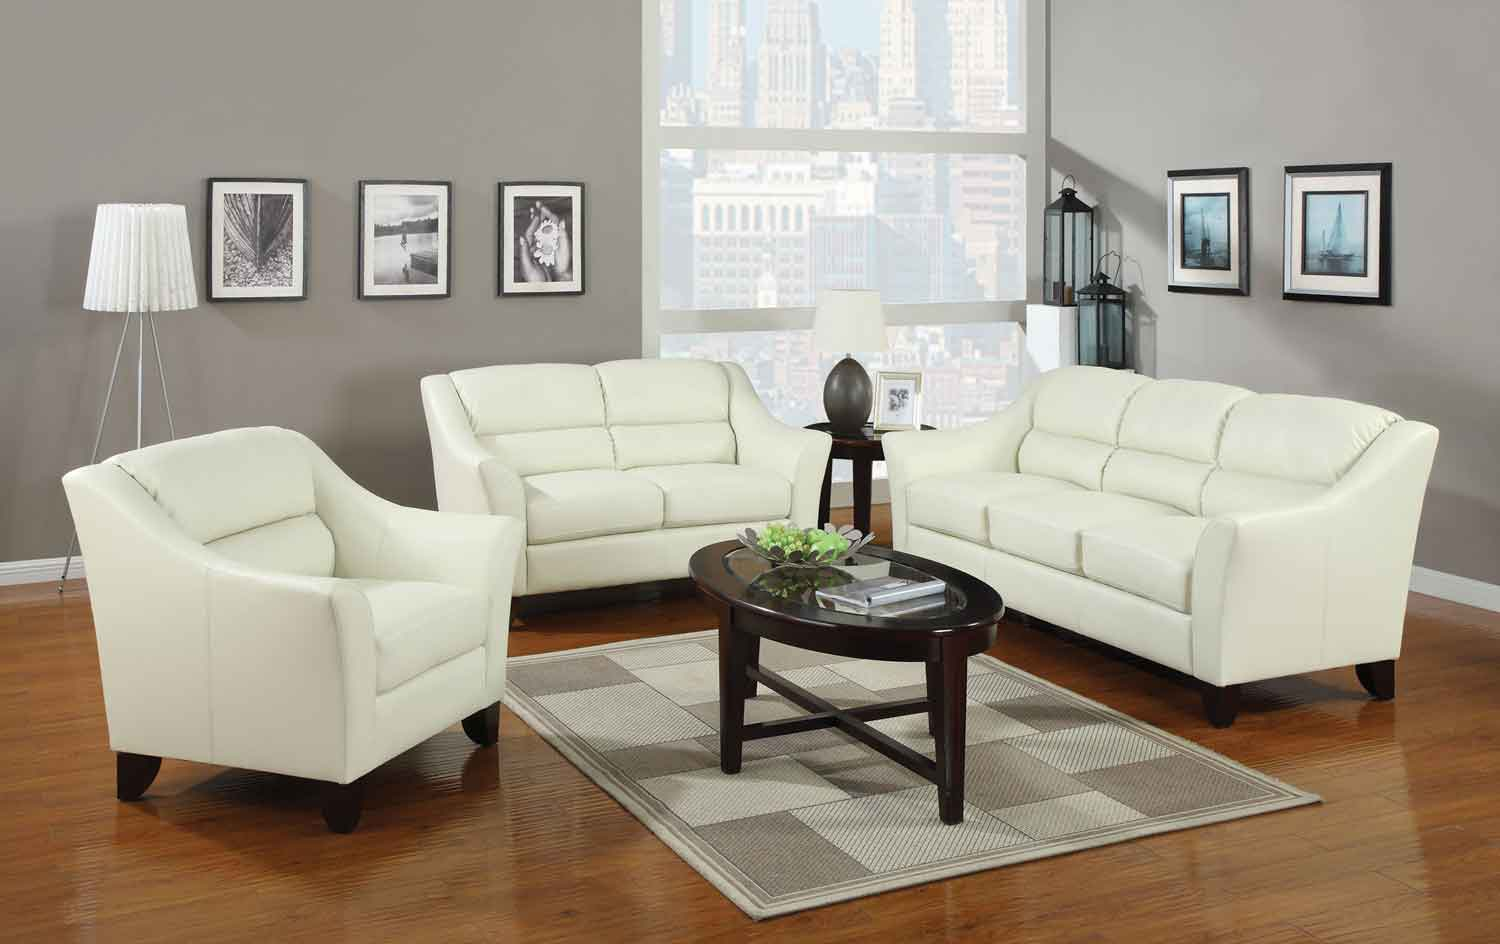 coaster brooklyn living room set ivory 504131 livset at. Black Bedroom Furniture Sets. Home Design Ideas